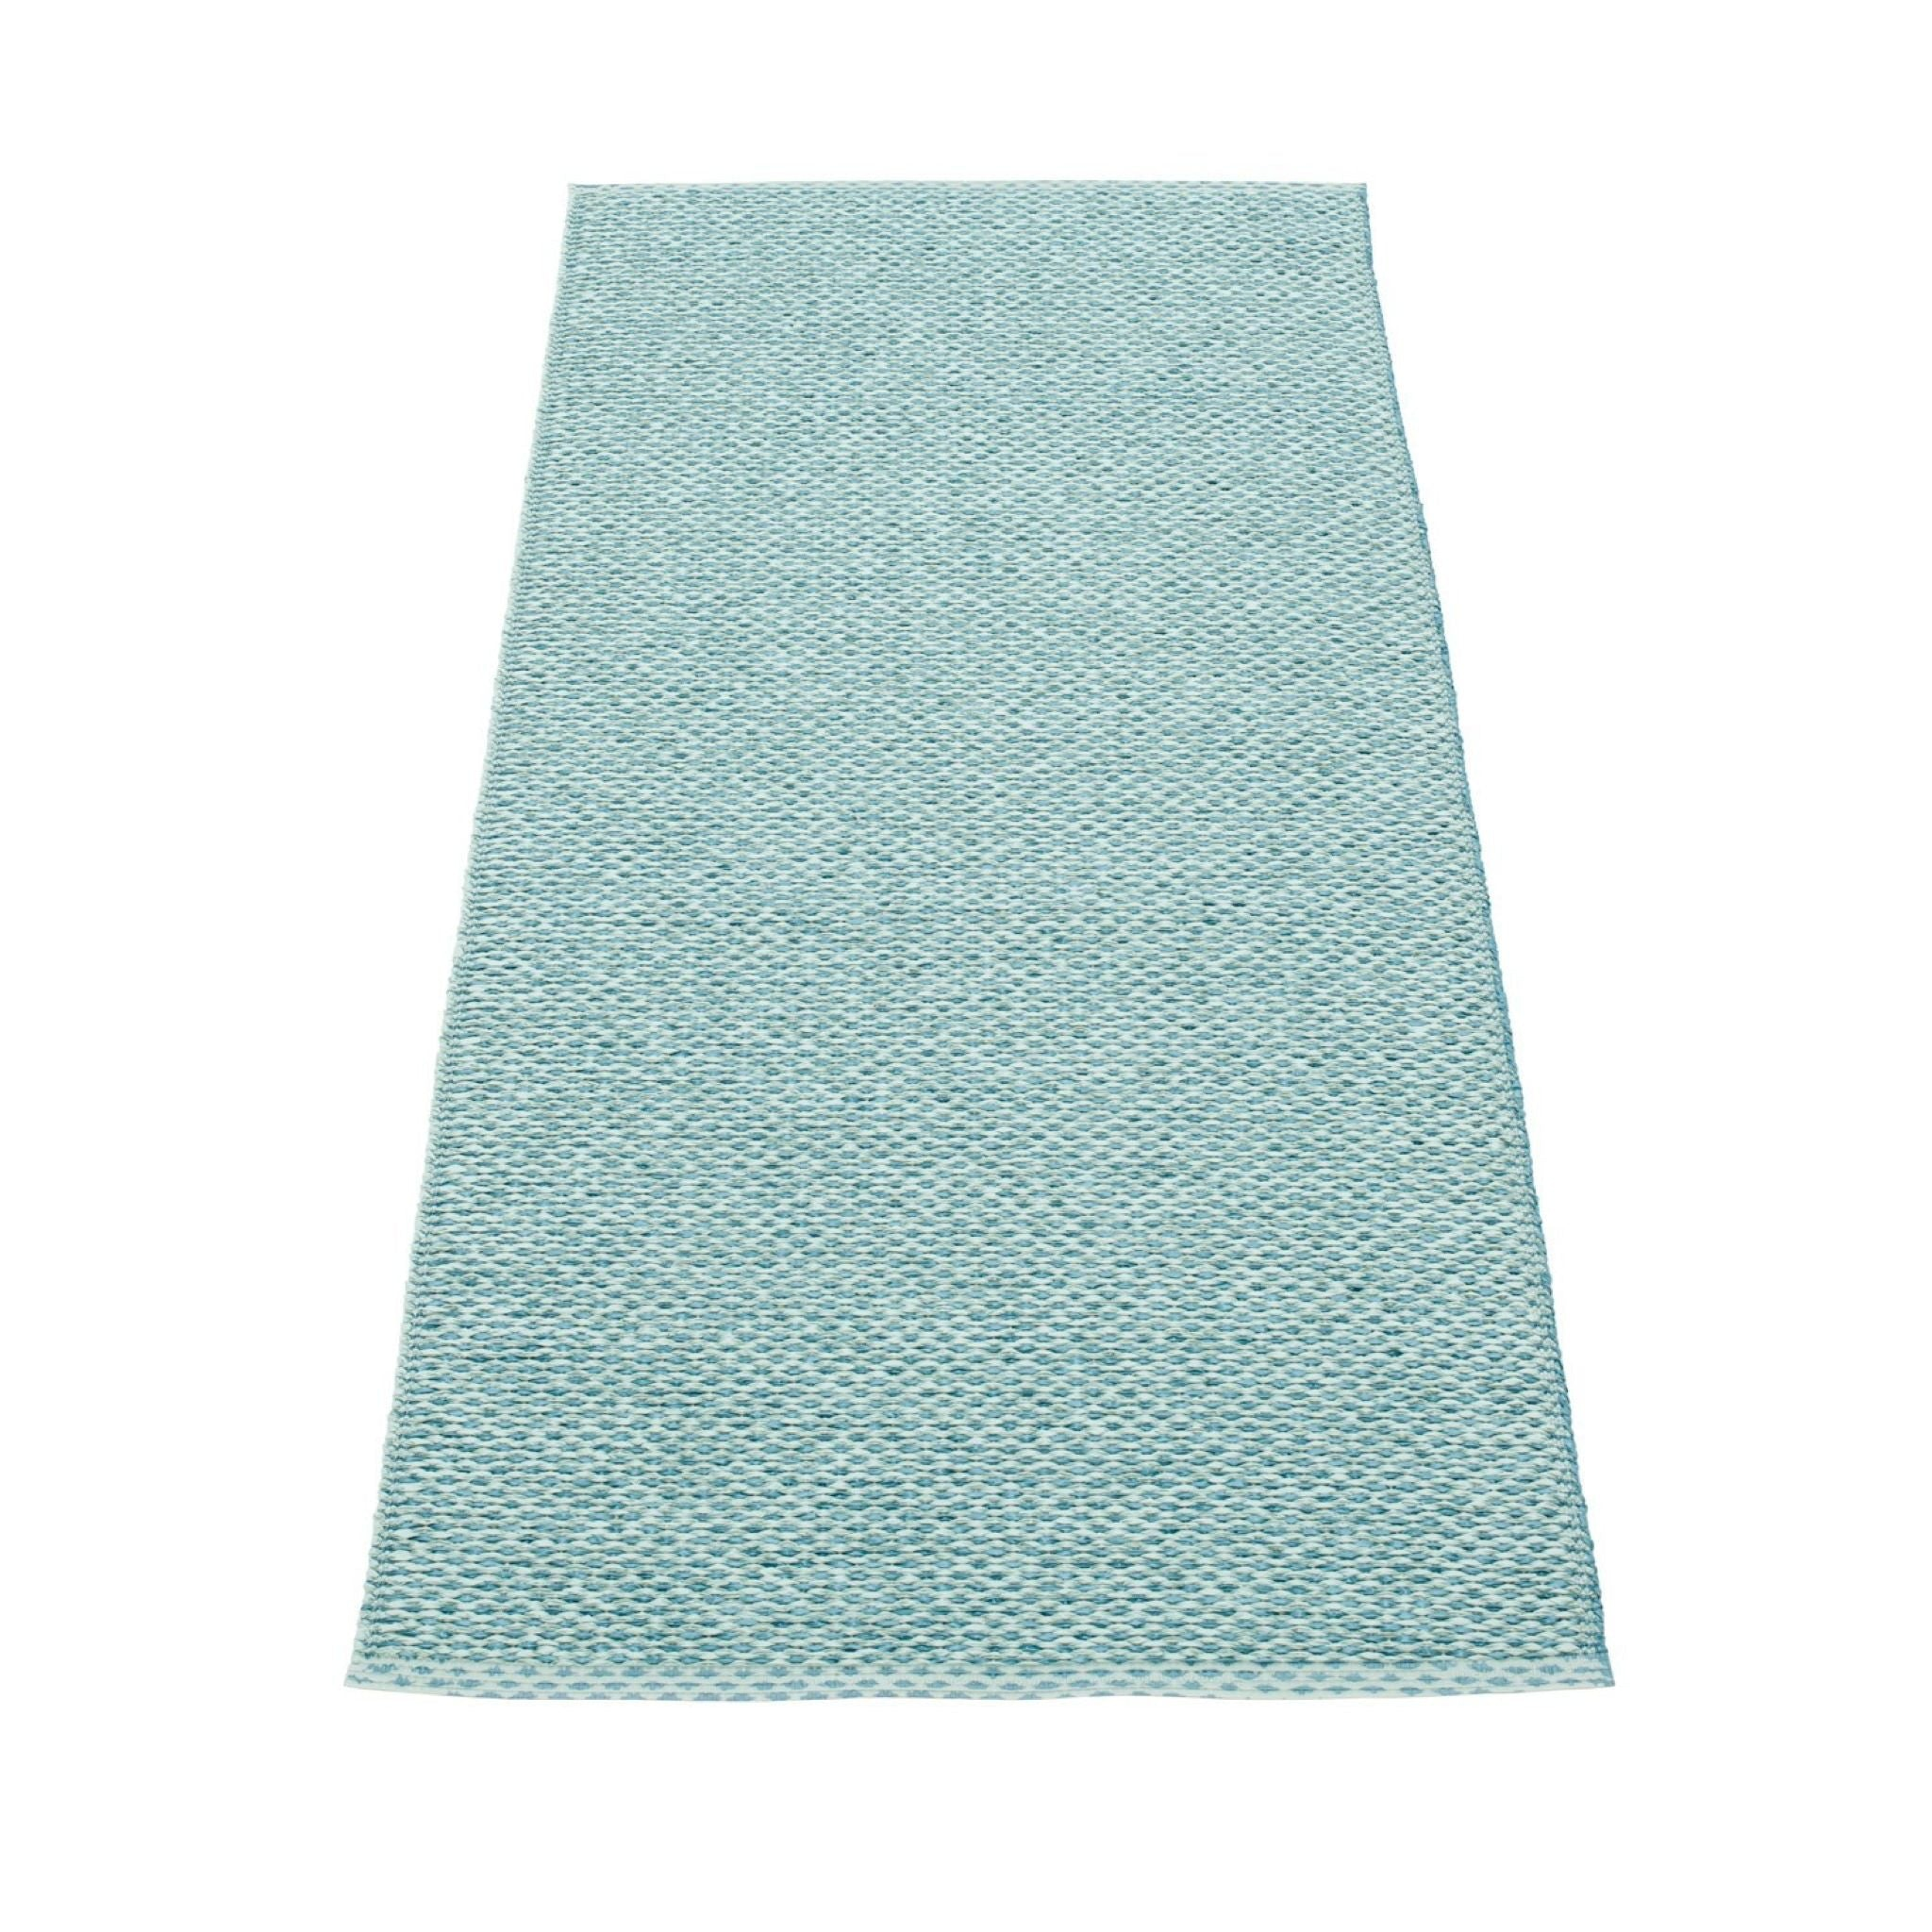 Svea rug by Pappelina